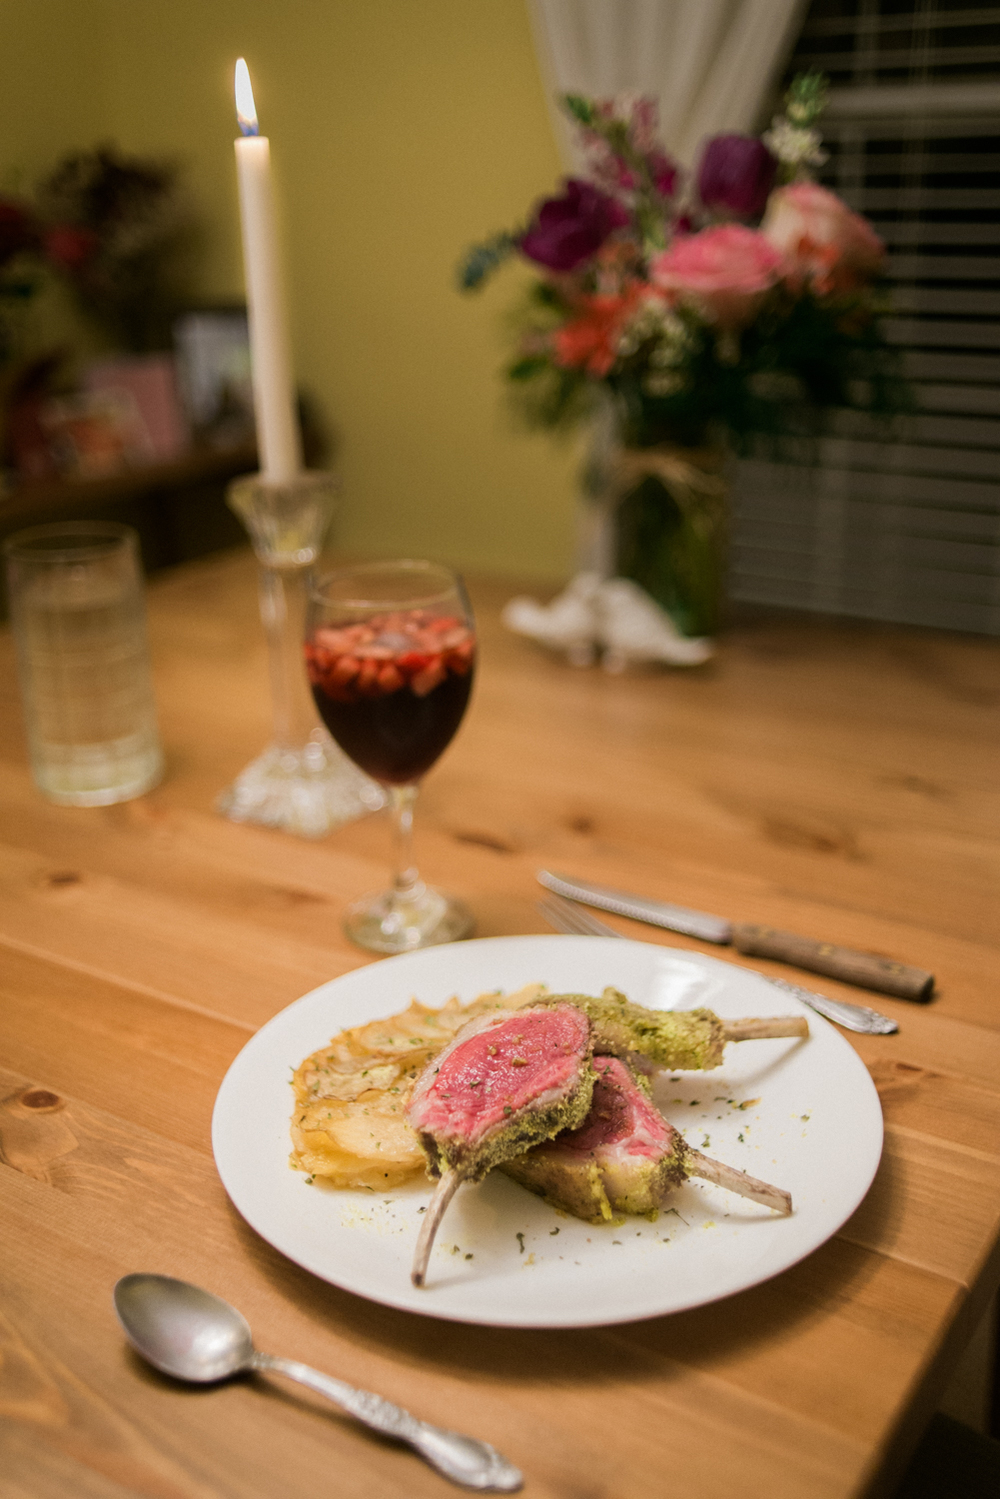 valentines-day-2015-portland-oregon-herb-crusted-rack-of-lamb-potatoes-boulangere-shelley-marie-photo-2.jpg